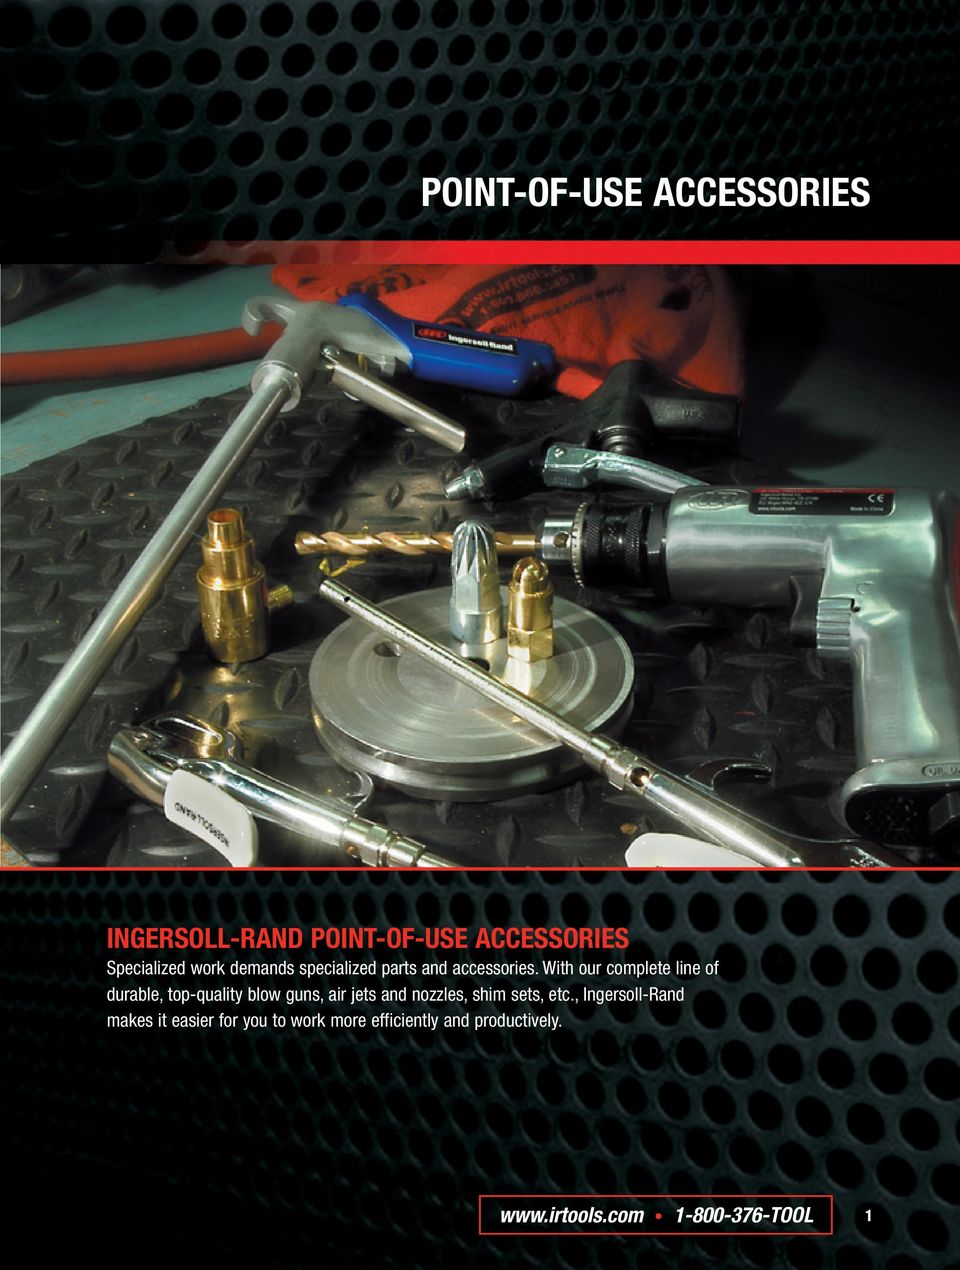 With our complete line of durable, top-quality blow guns, air jets and